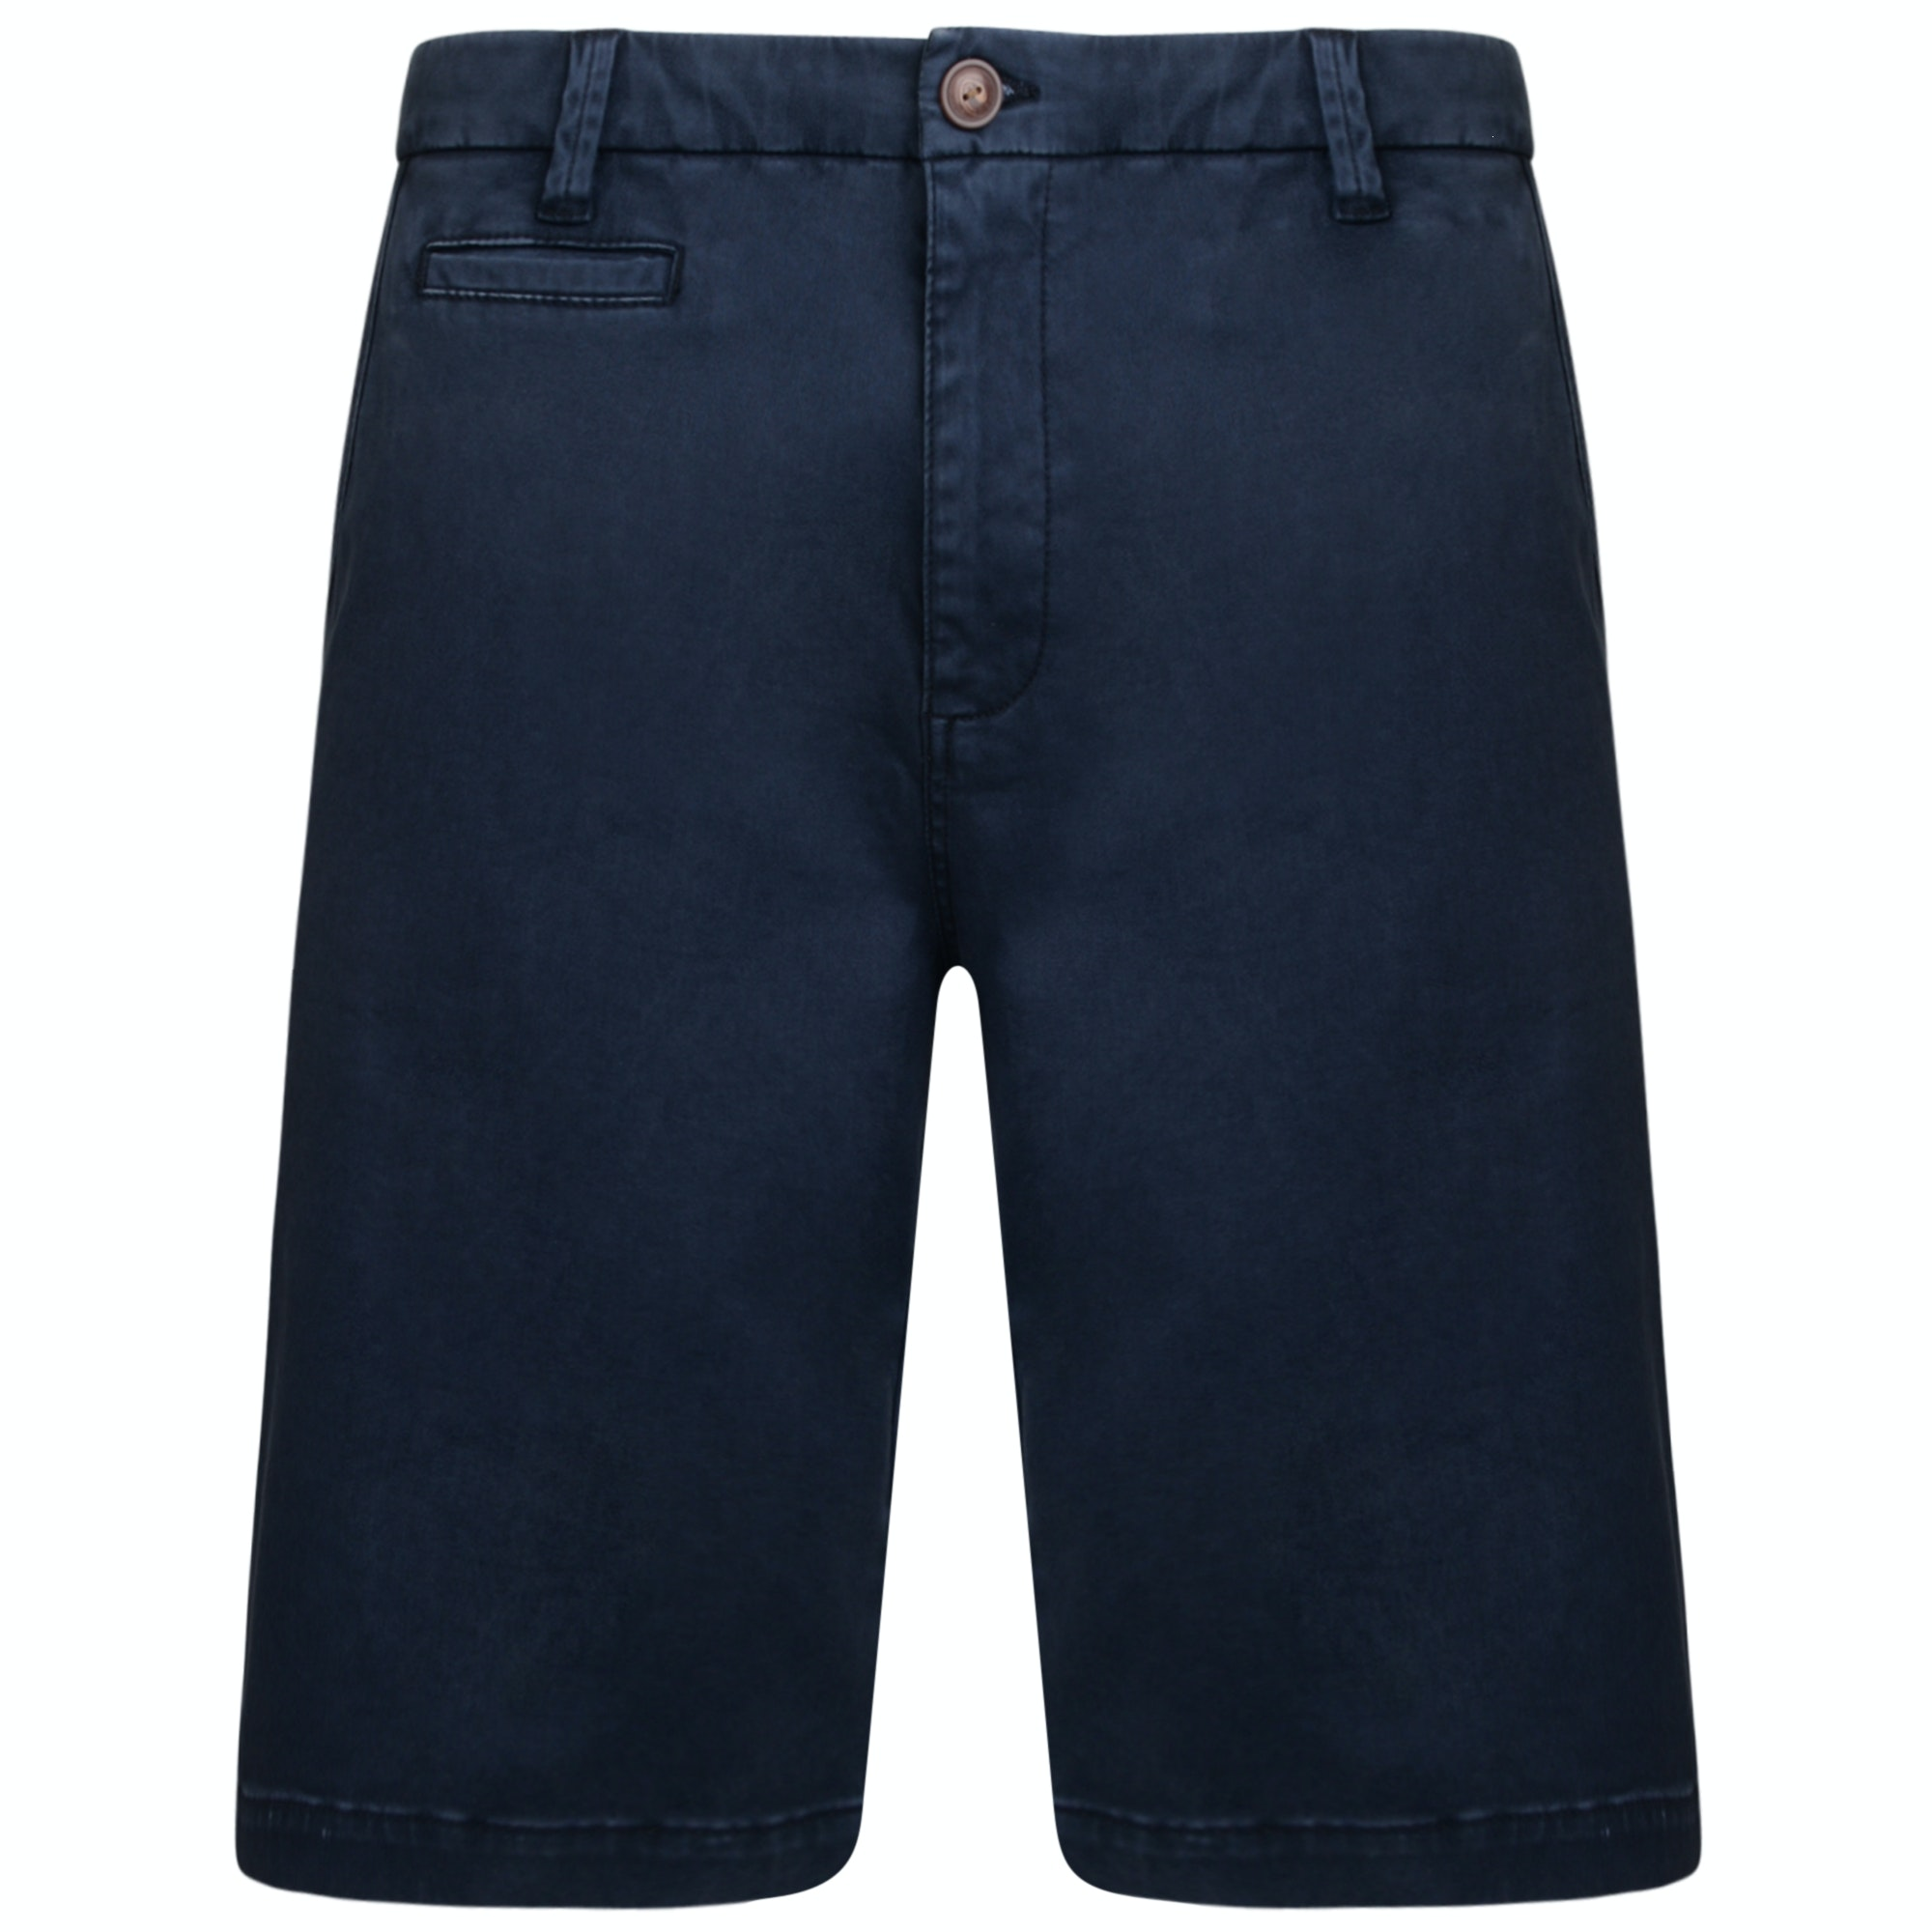 KAM Stretch Chino Shorts Navy